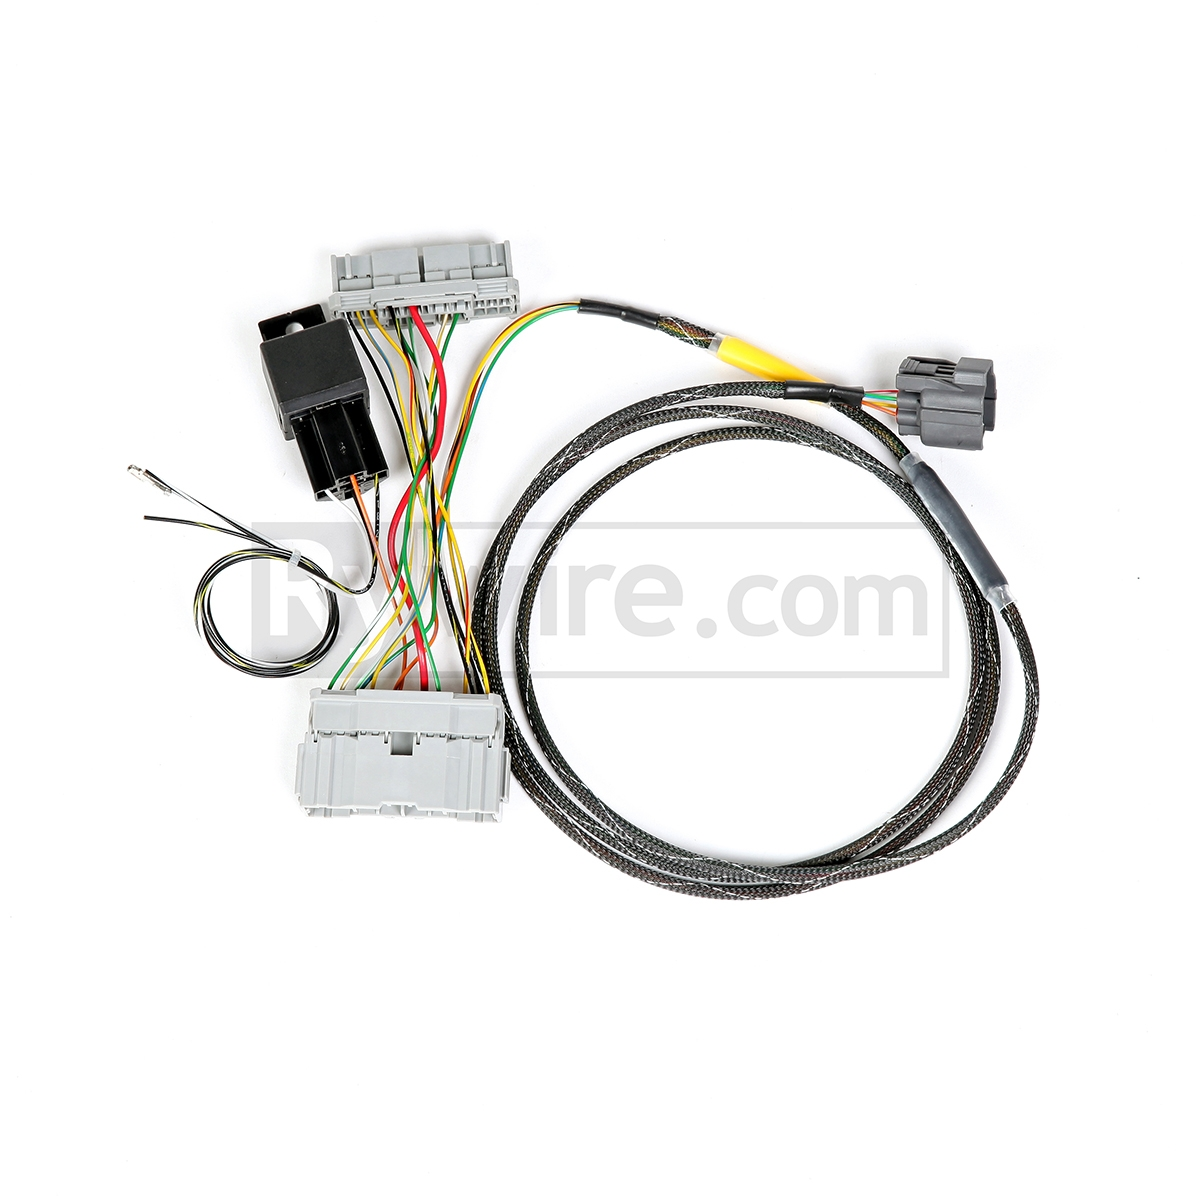 small resolution of 01 05 civic k series conversion harness subaru wiring harness conversion rywire motorsport electronics